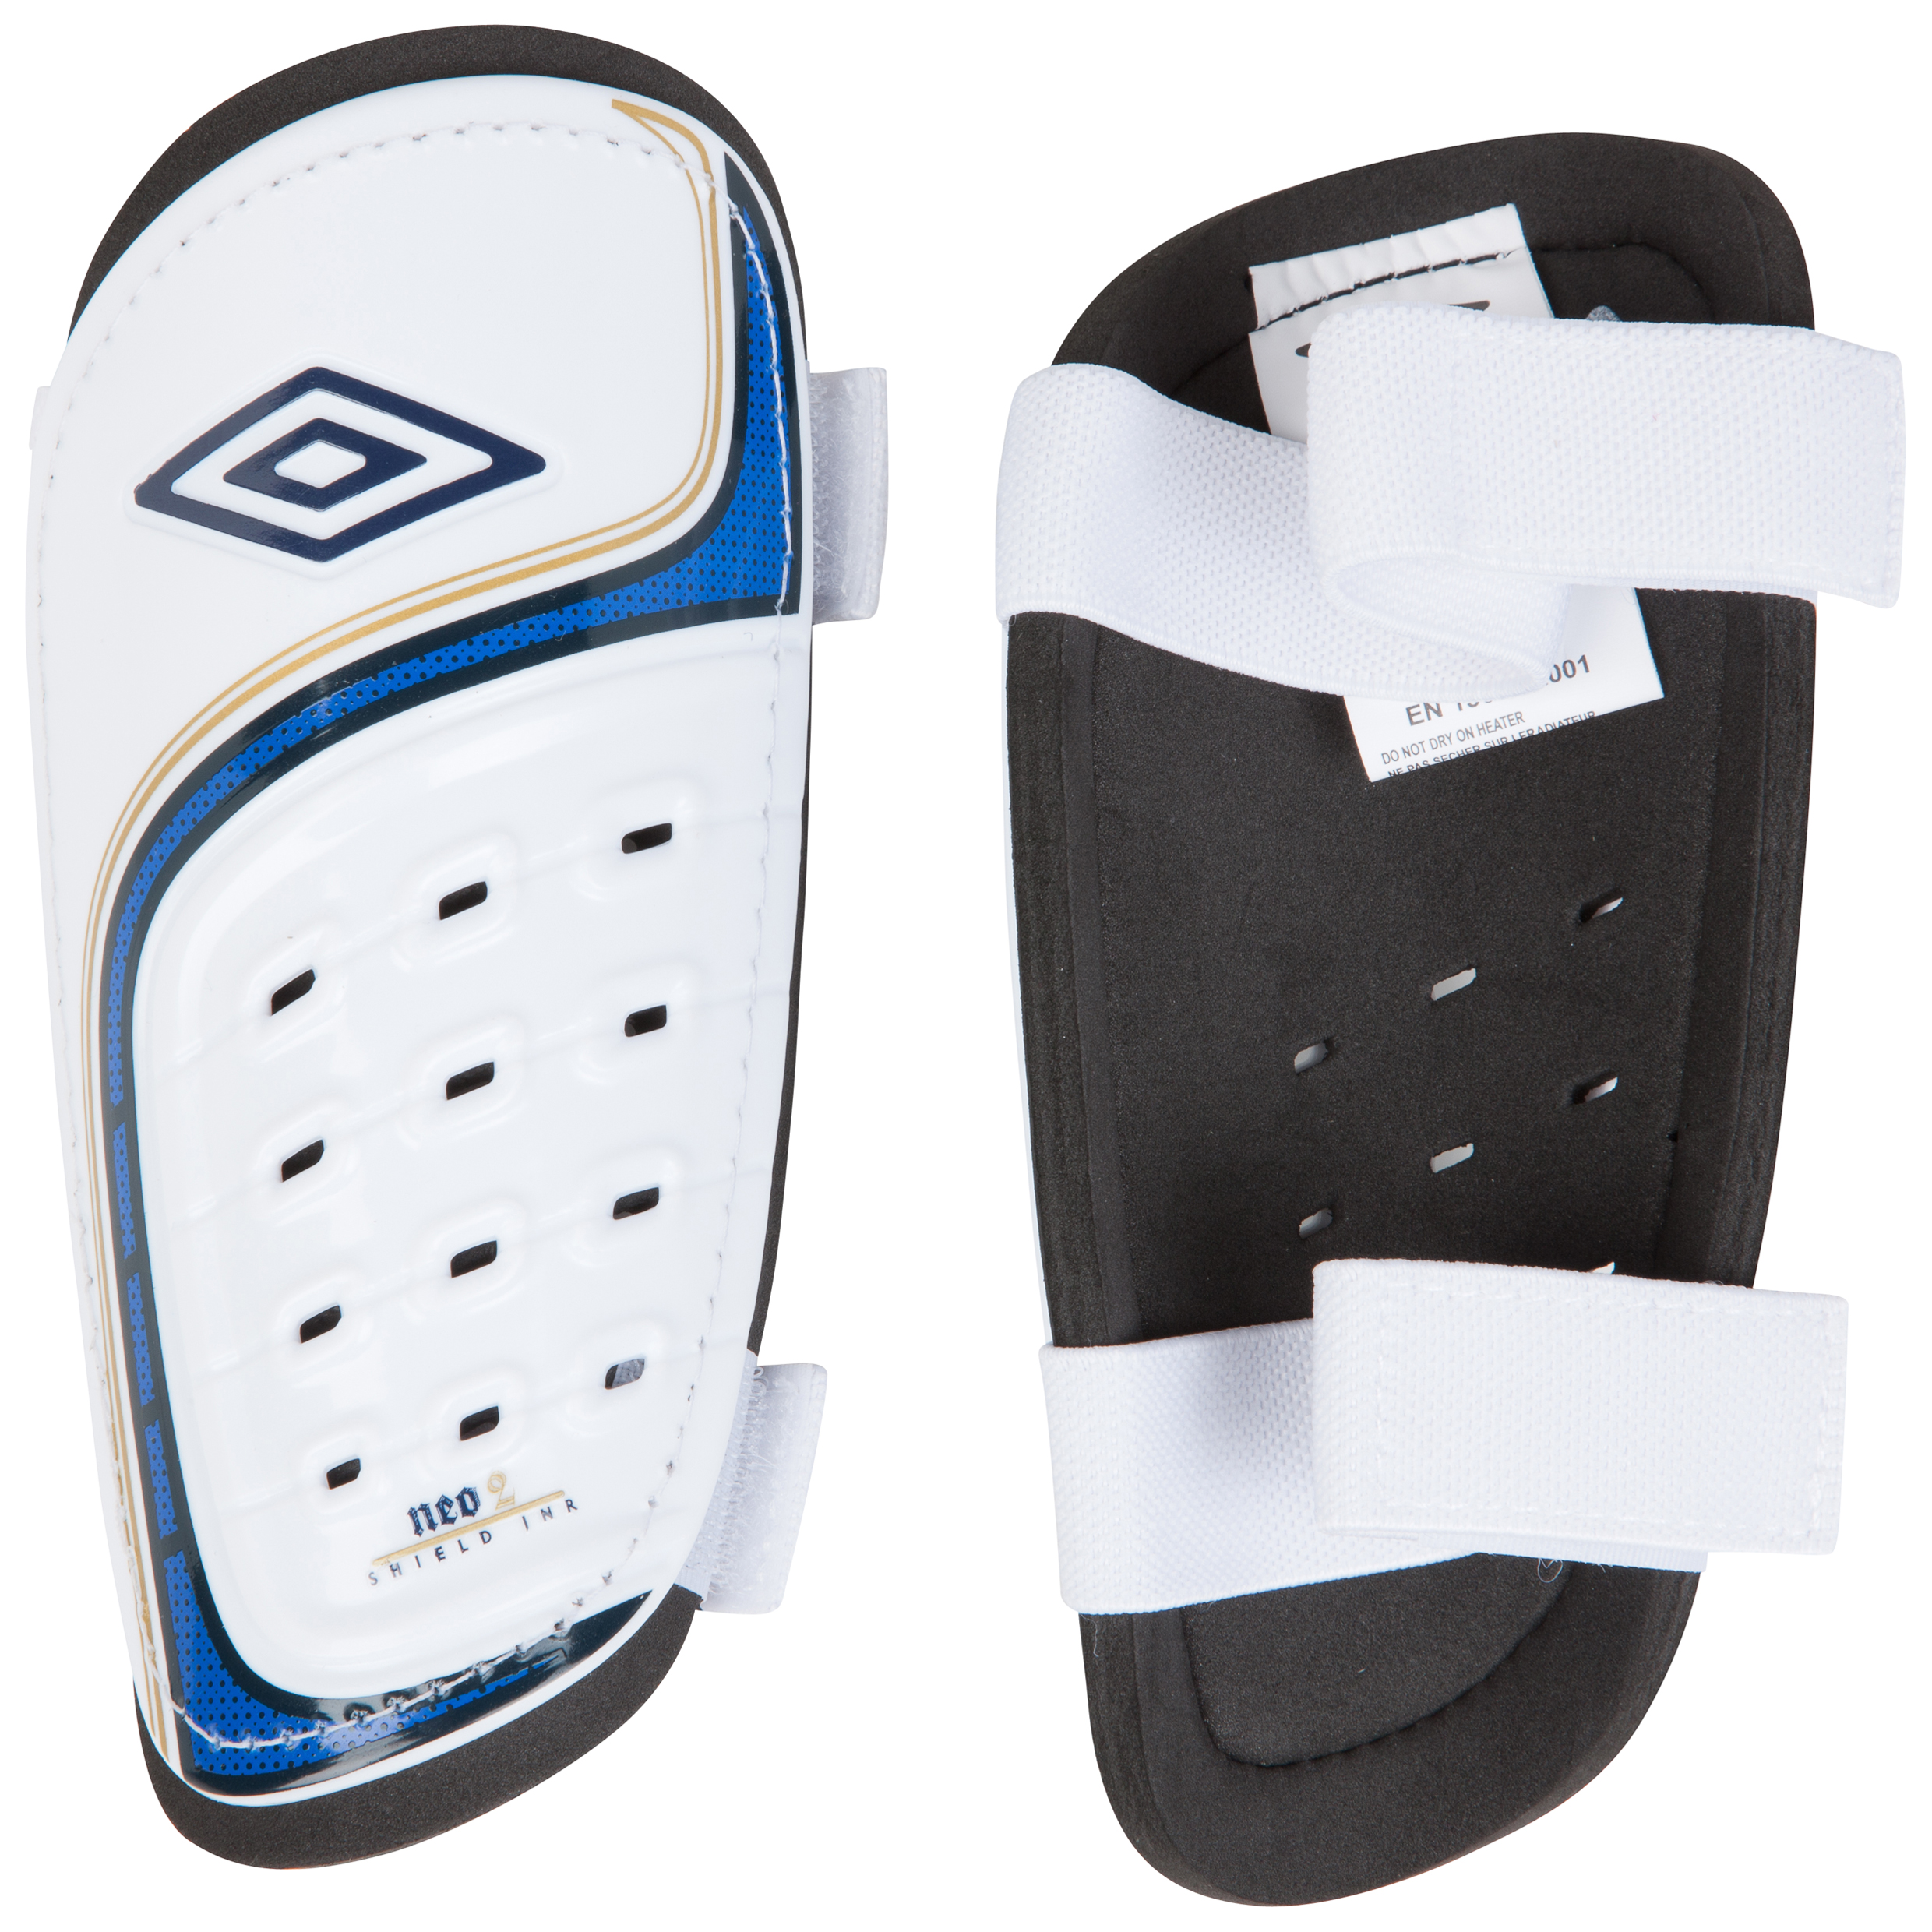 Umbro Neo Shield Shin Pads - White/Twilight Blue/Gold